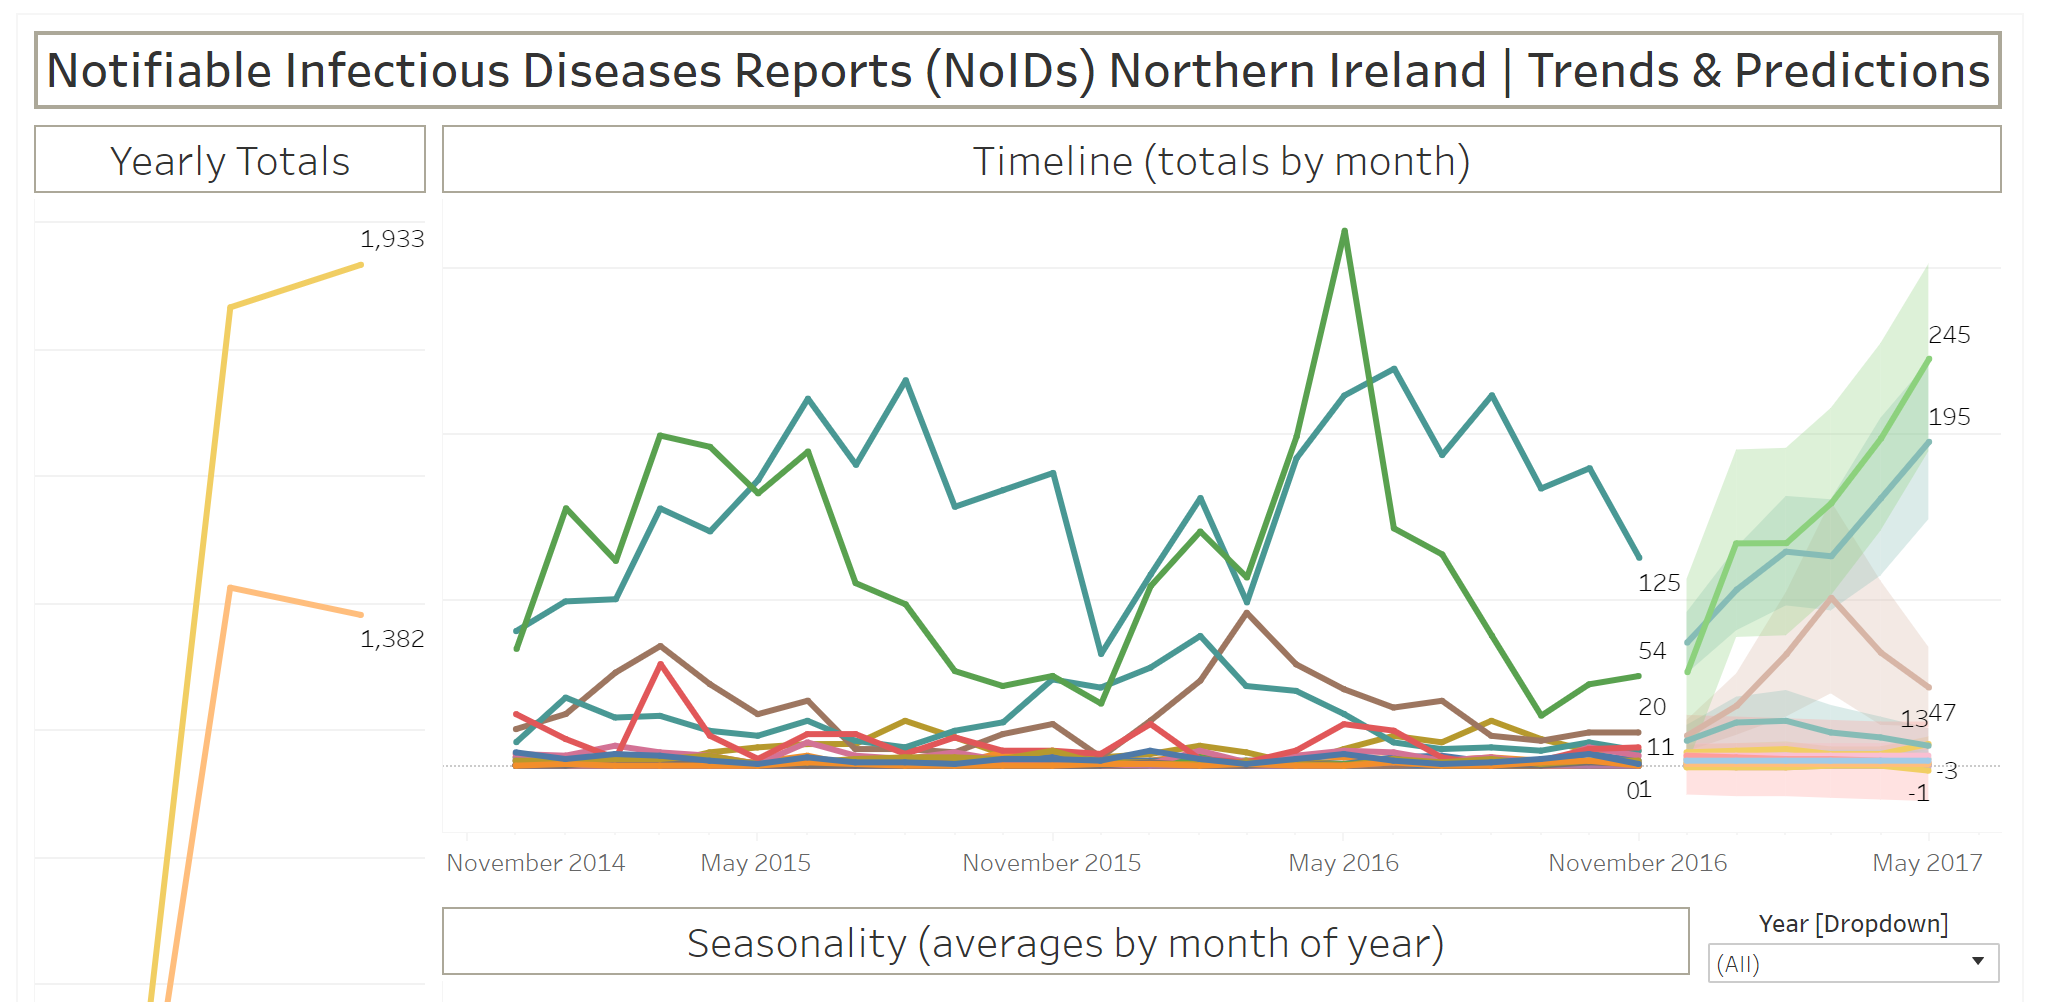 notifiable-infectious-diseases-reports-noids-northern-ireland-trends-predictions